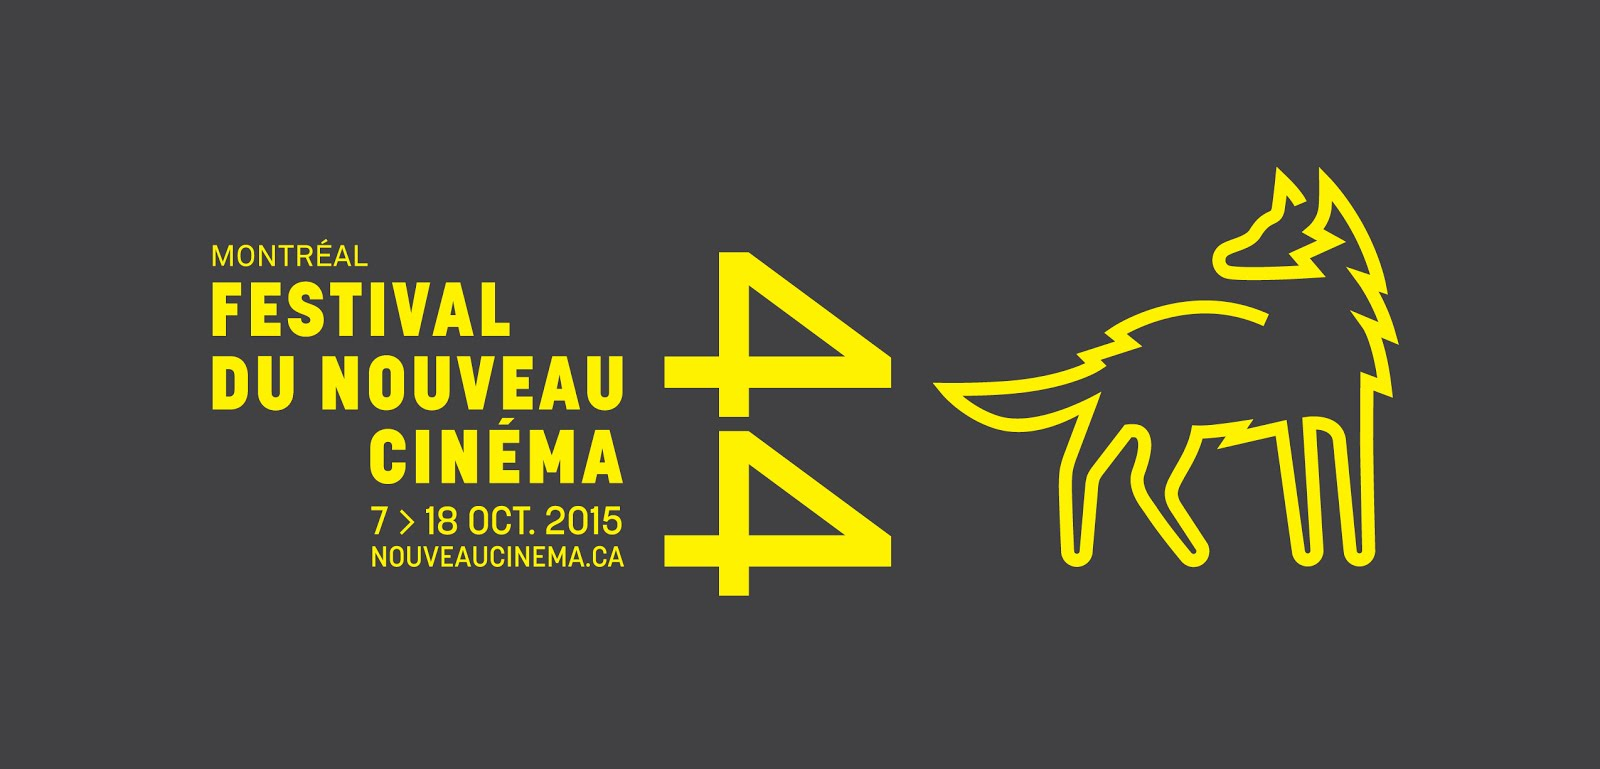 Festival du Nouveau Cinéma - click for the festival's website